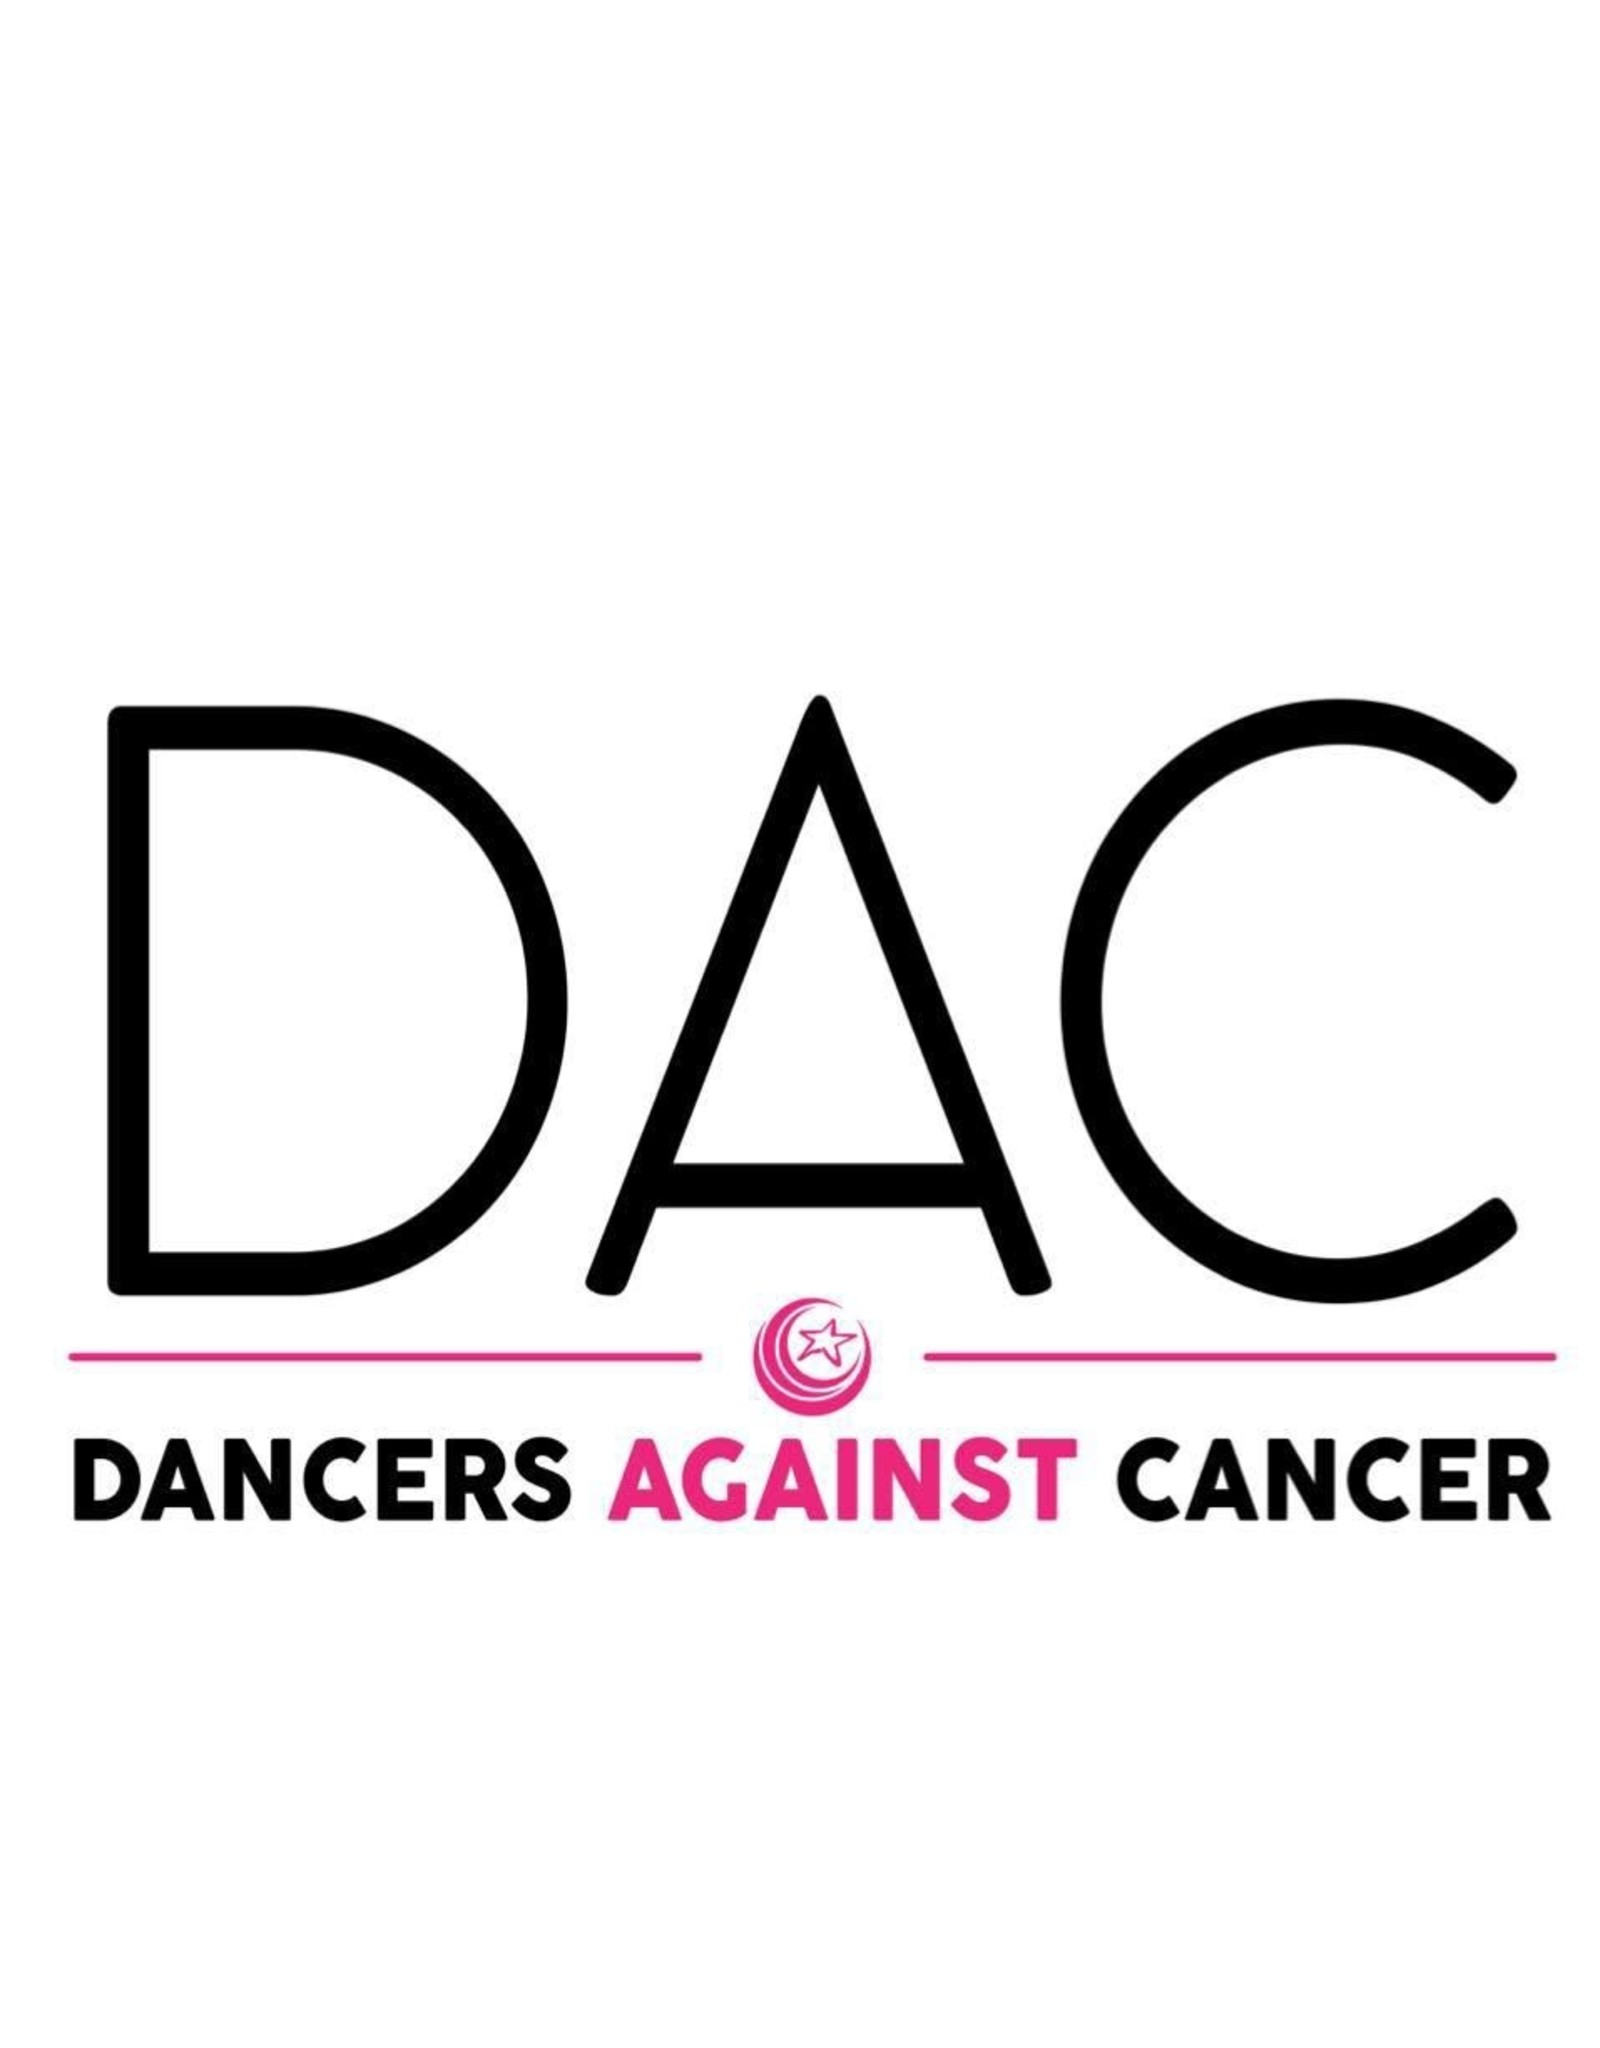 DANCERS AGAINST CANCER DONATION DANCERS AGAINST CANCER